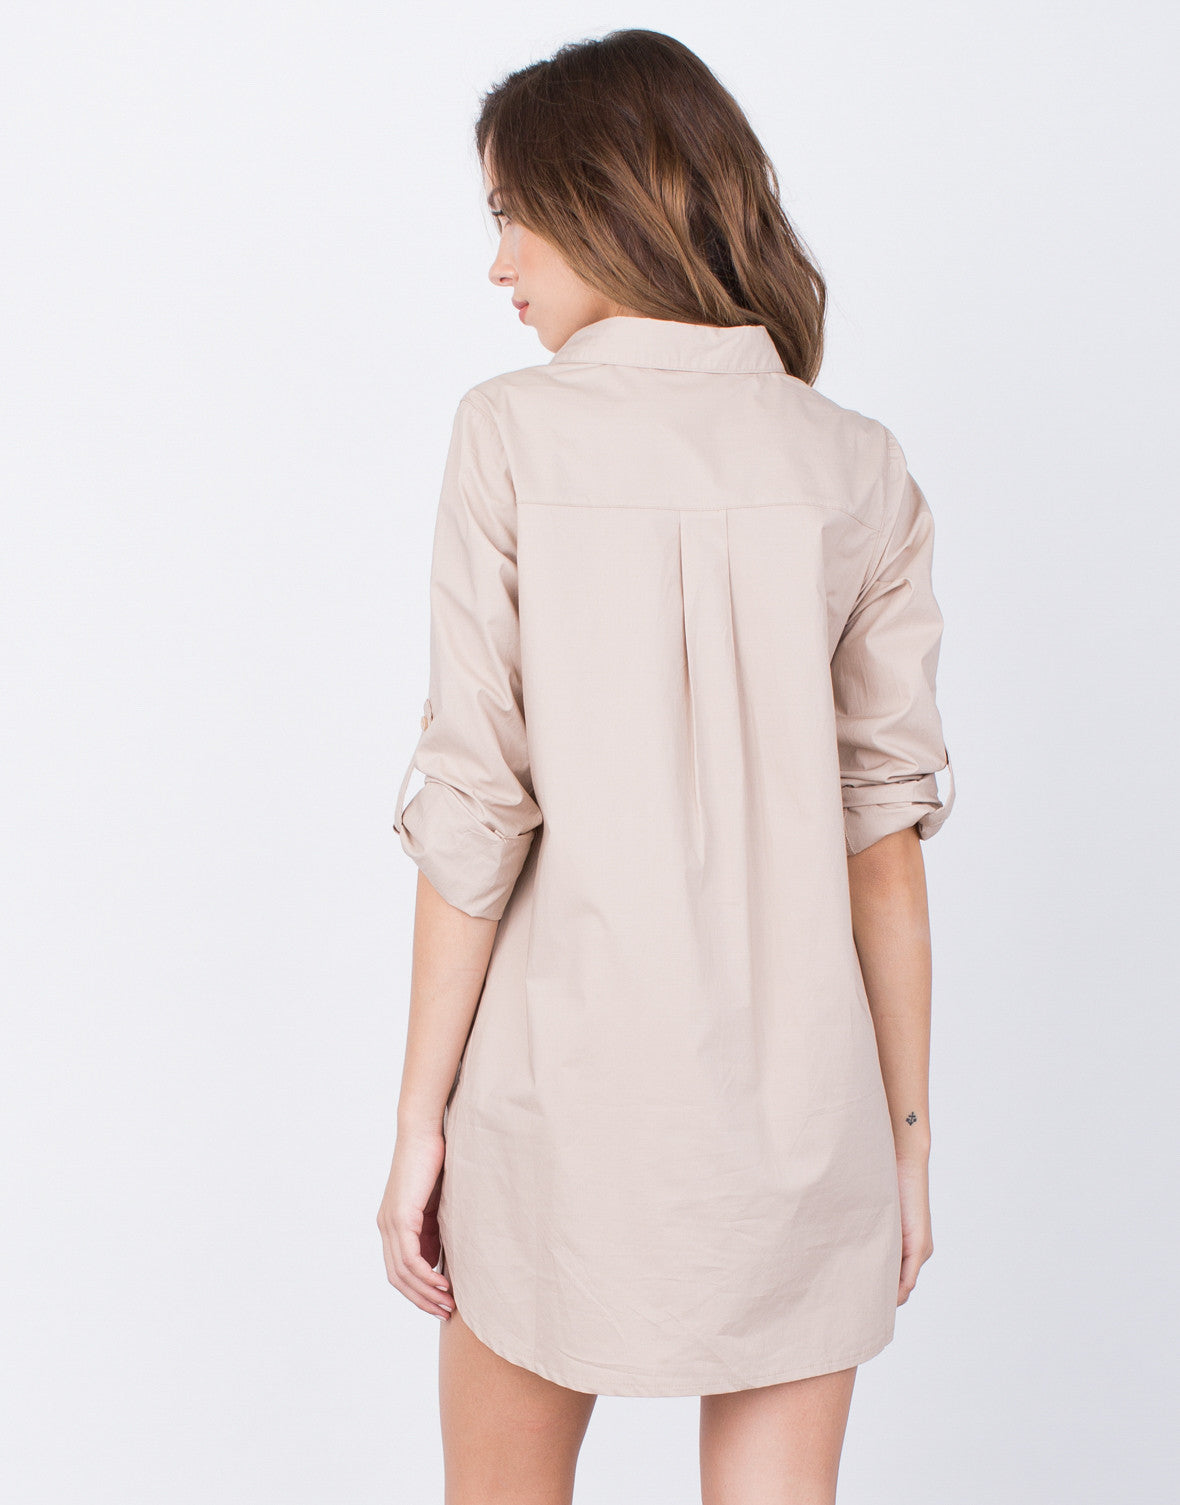 Back View of Lace-Up Shirt Dress